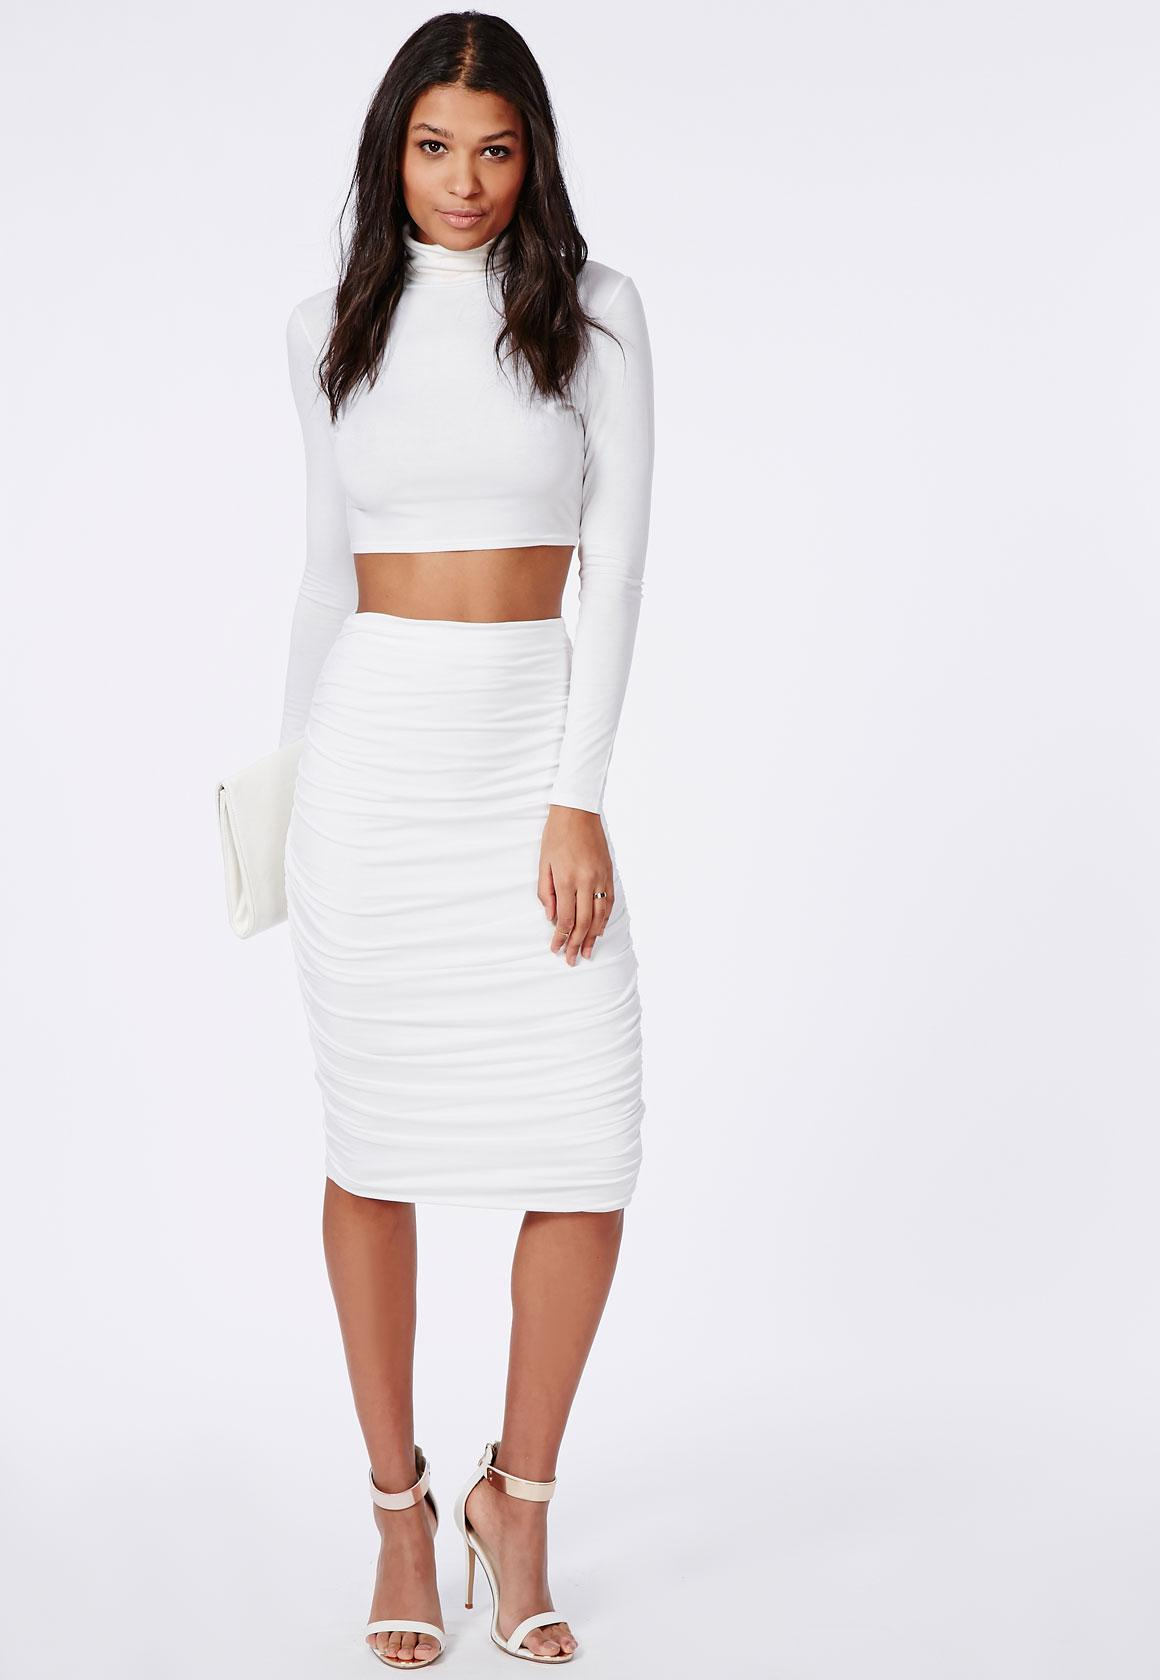 Ruched Seam Midi Skirt White - Skirt - Missguided